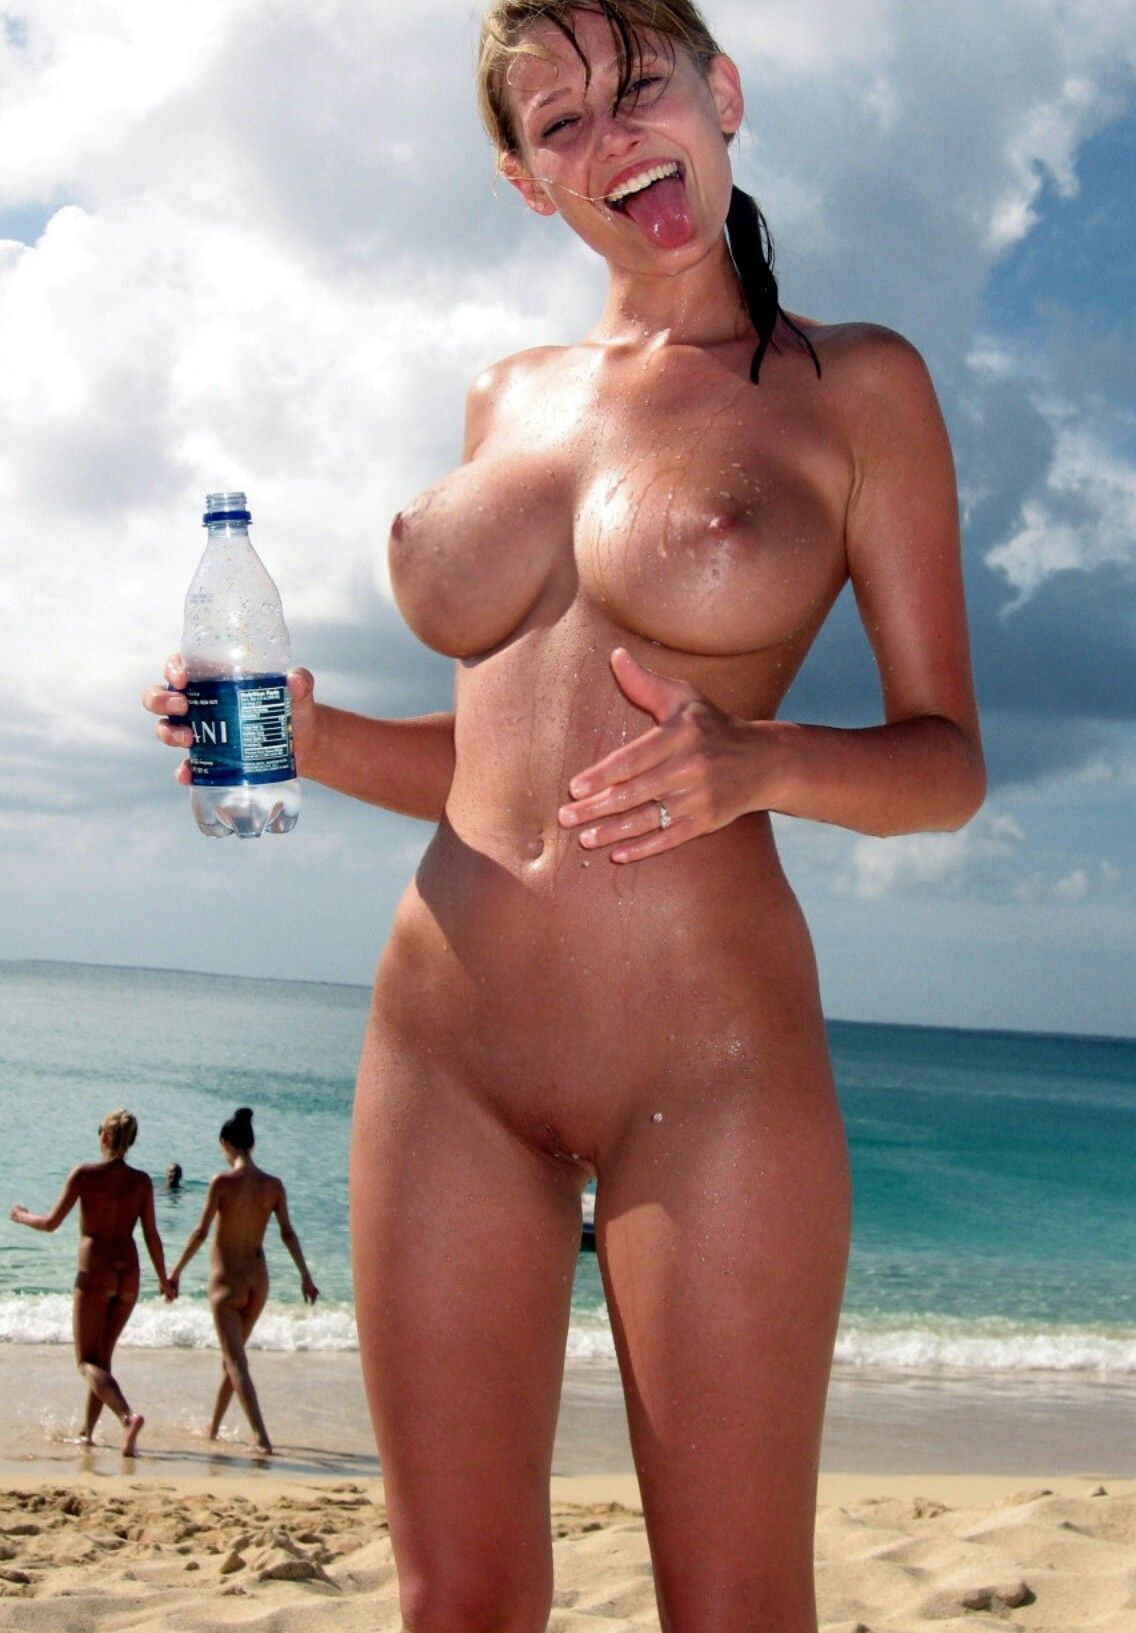 pure nudism girls  All about public nudity, nude beach girls, family nudist camps, pure nudism  and naturism.